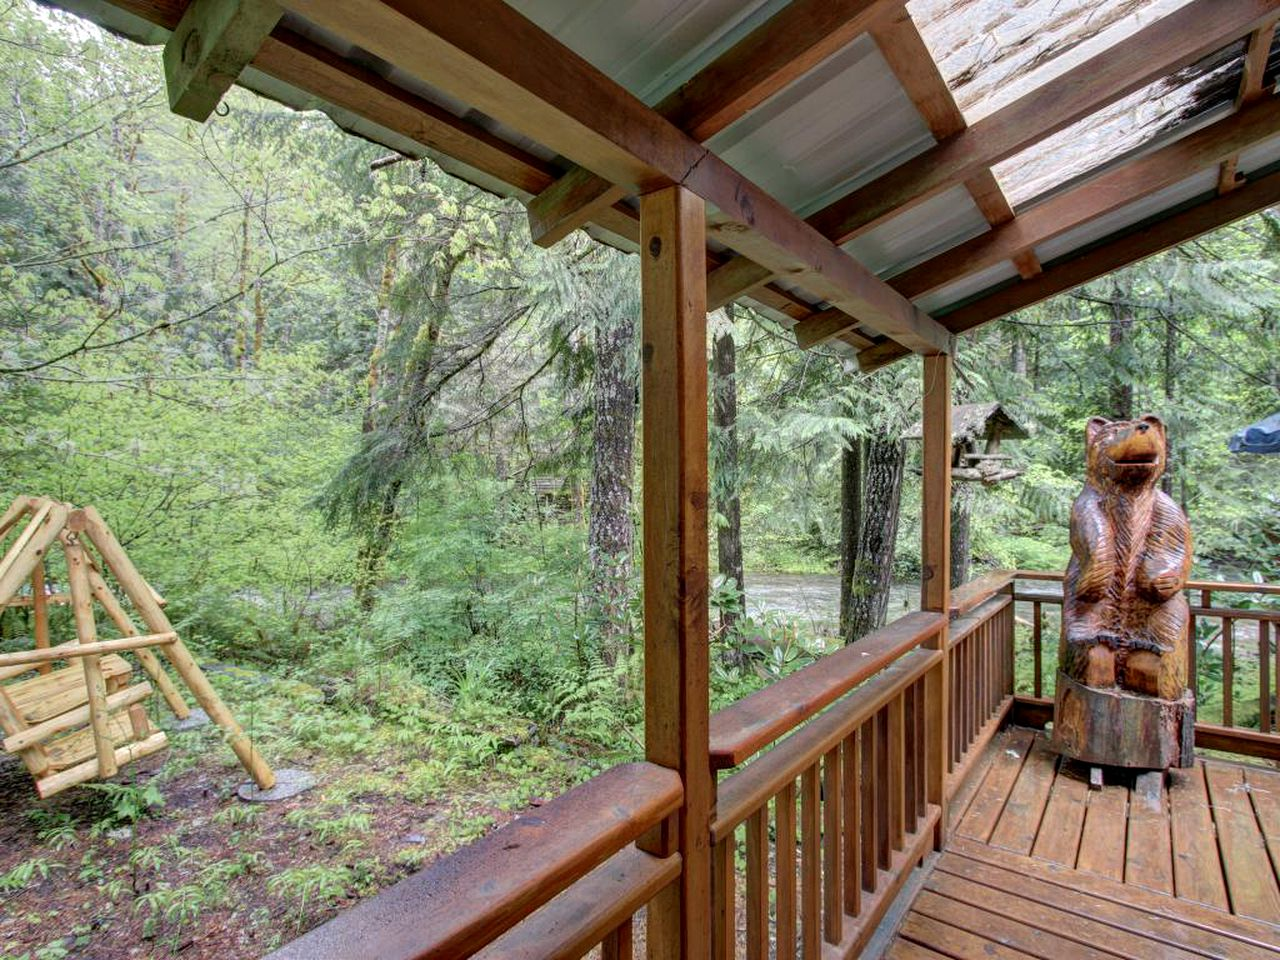 Salmon river cabin rental (Welches, Oregon, United States)